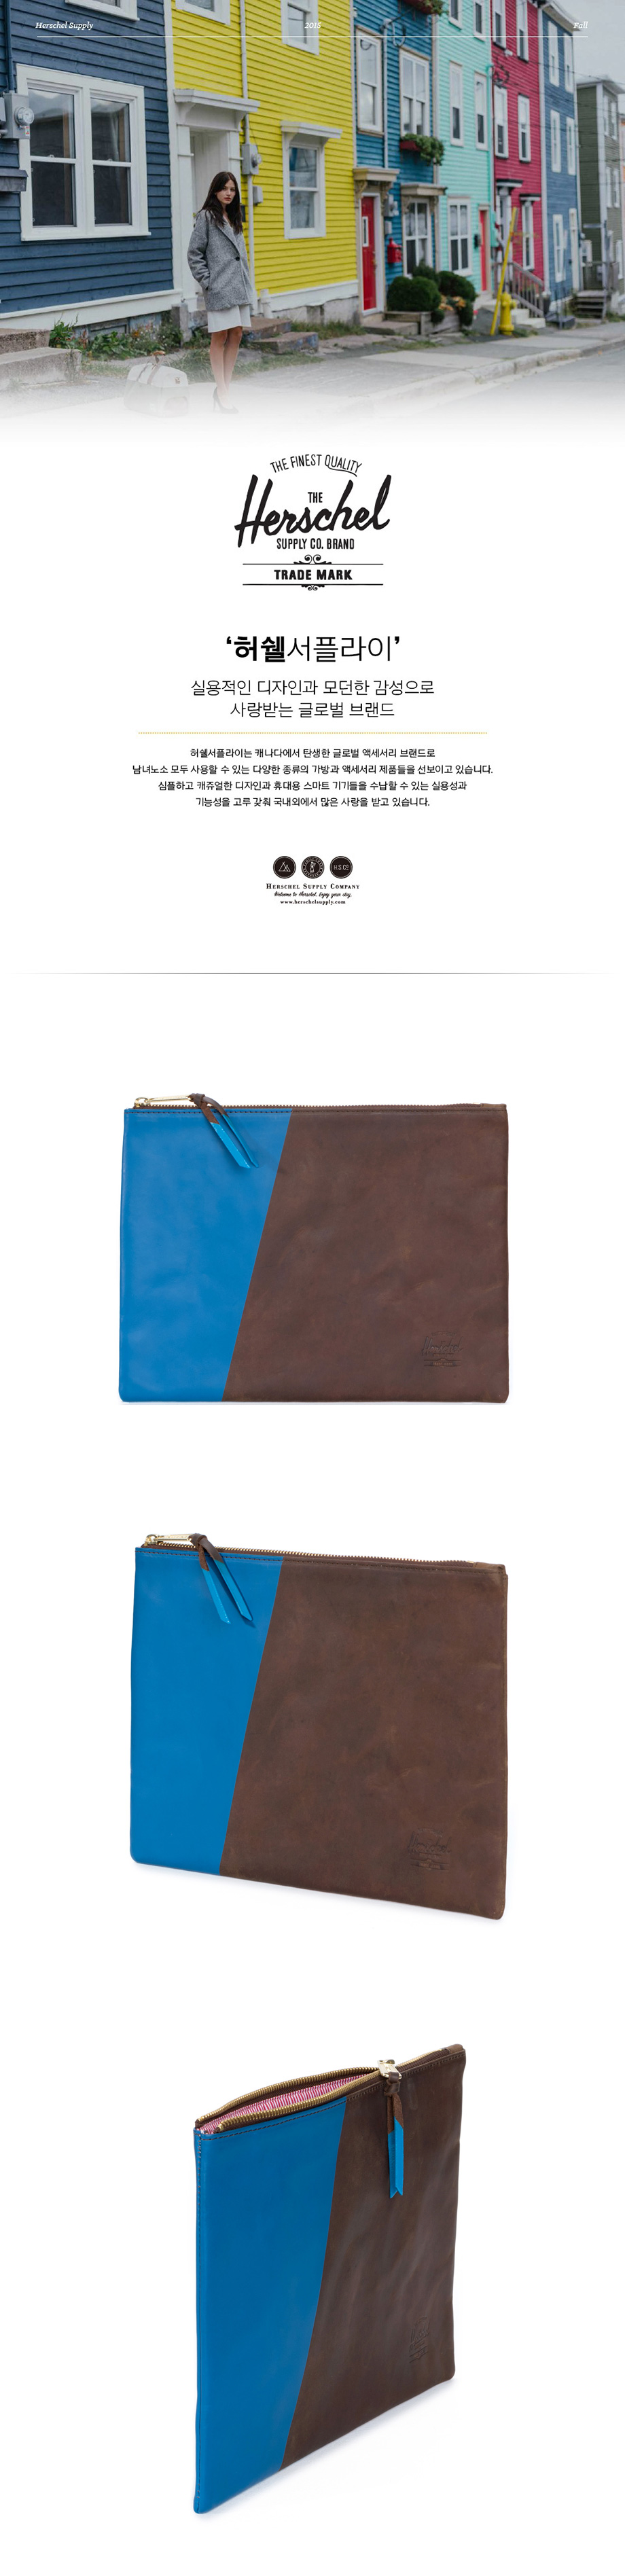 [허쉘]HERSCHEL - 2015 NETWORK POUCH LARGE Leather (Nubuck/Cobalt) 허쉘코리아 정품